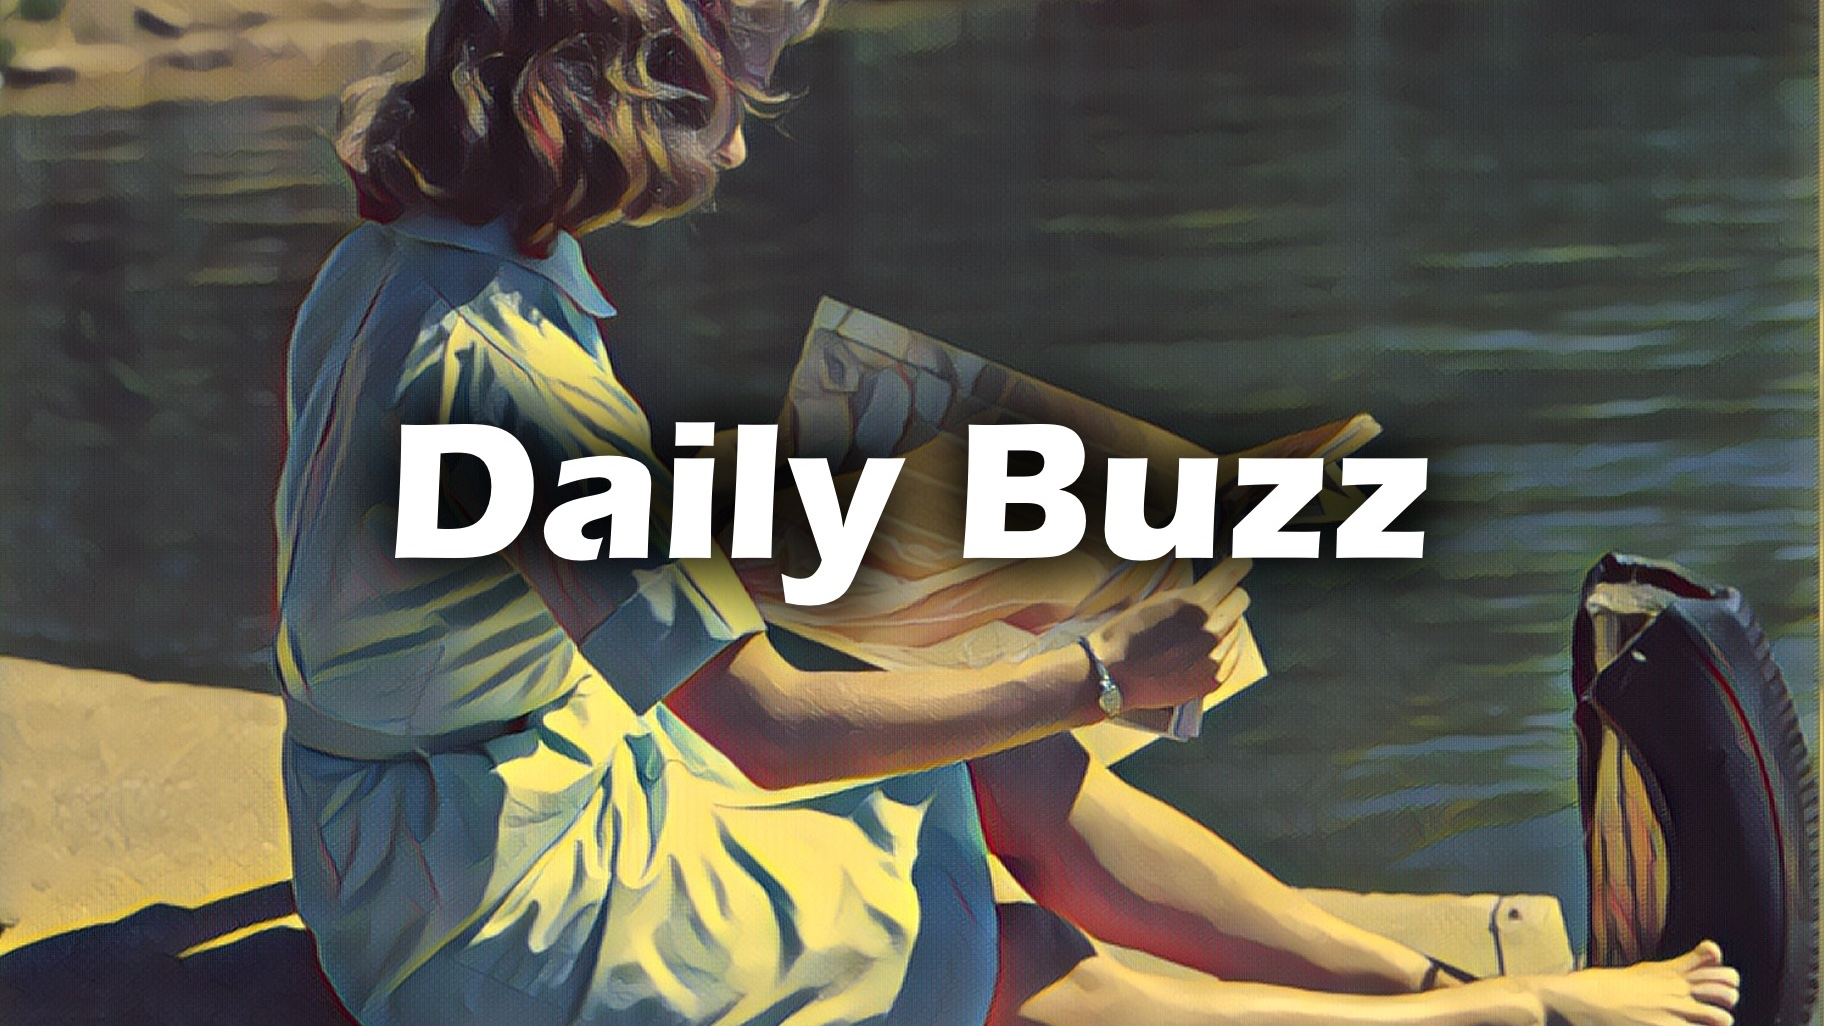 DailyBuzz Monday 9 July 2018